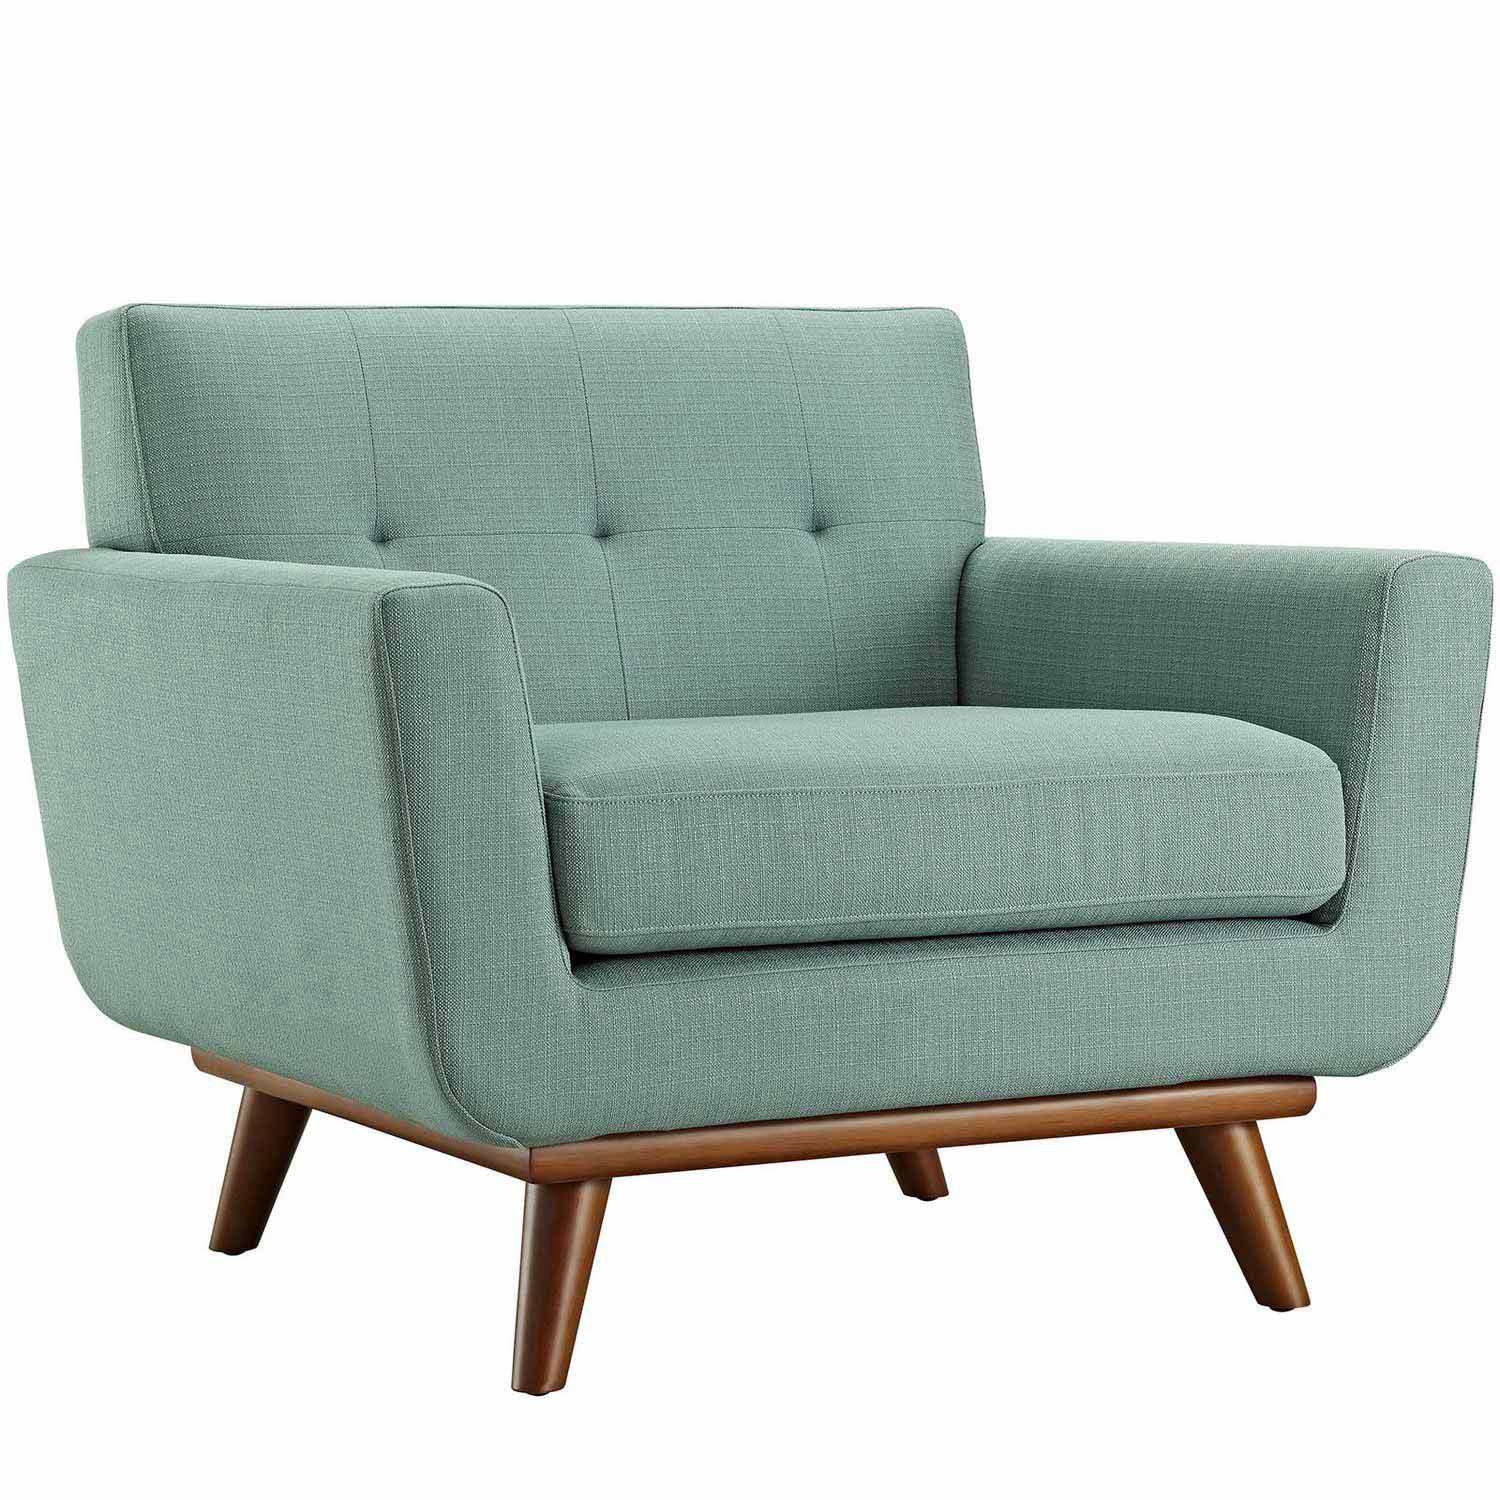 Modway Engage Upholstered Armchair - Laguna